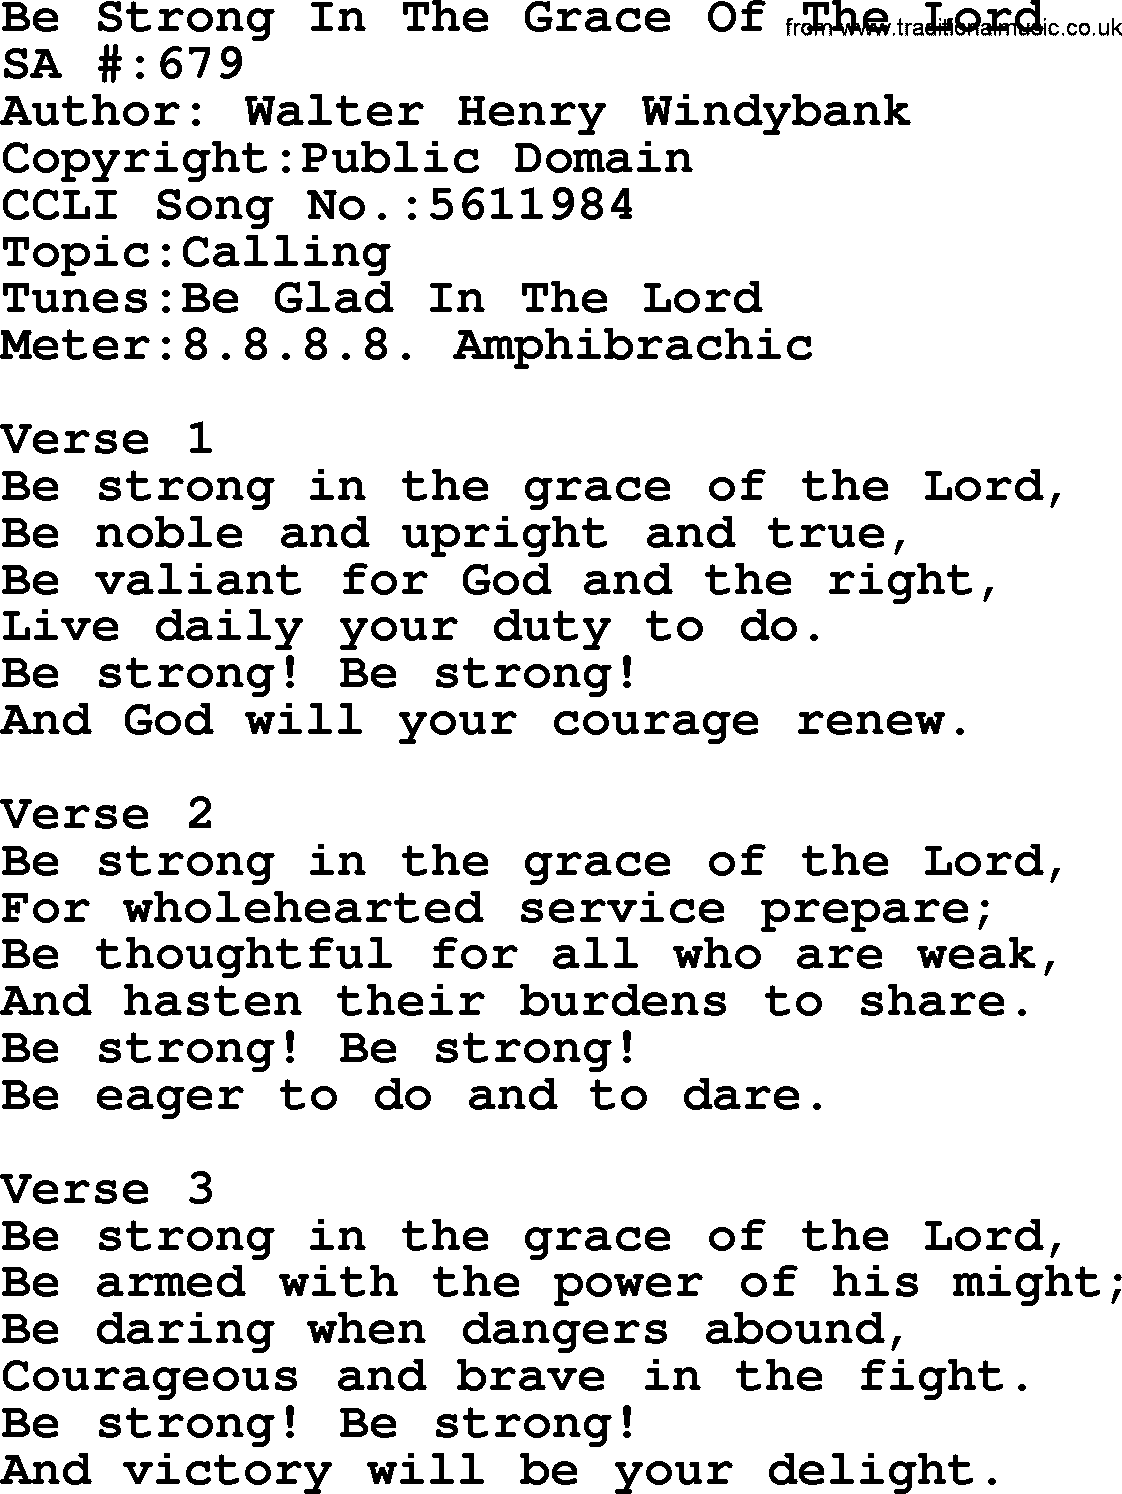 Salvation army hymnal song be strong in the grace of the lord salvation army hymnal title be strong in the grace of the lord with hexwebz Choice Image